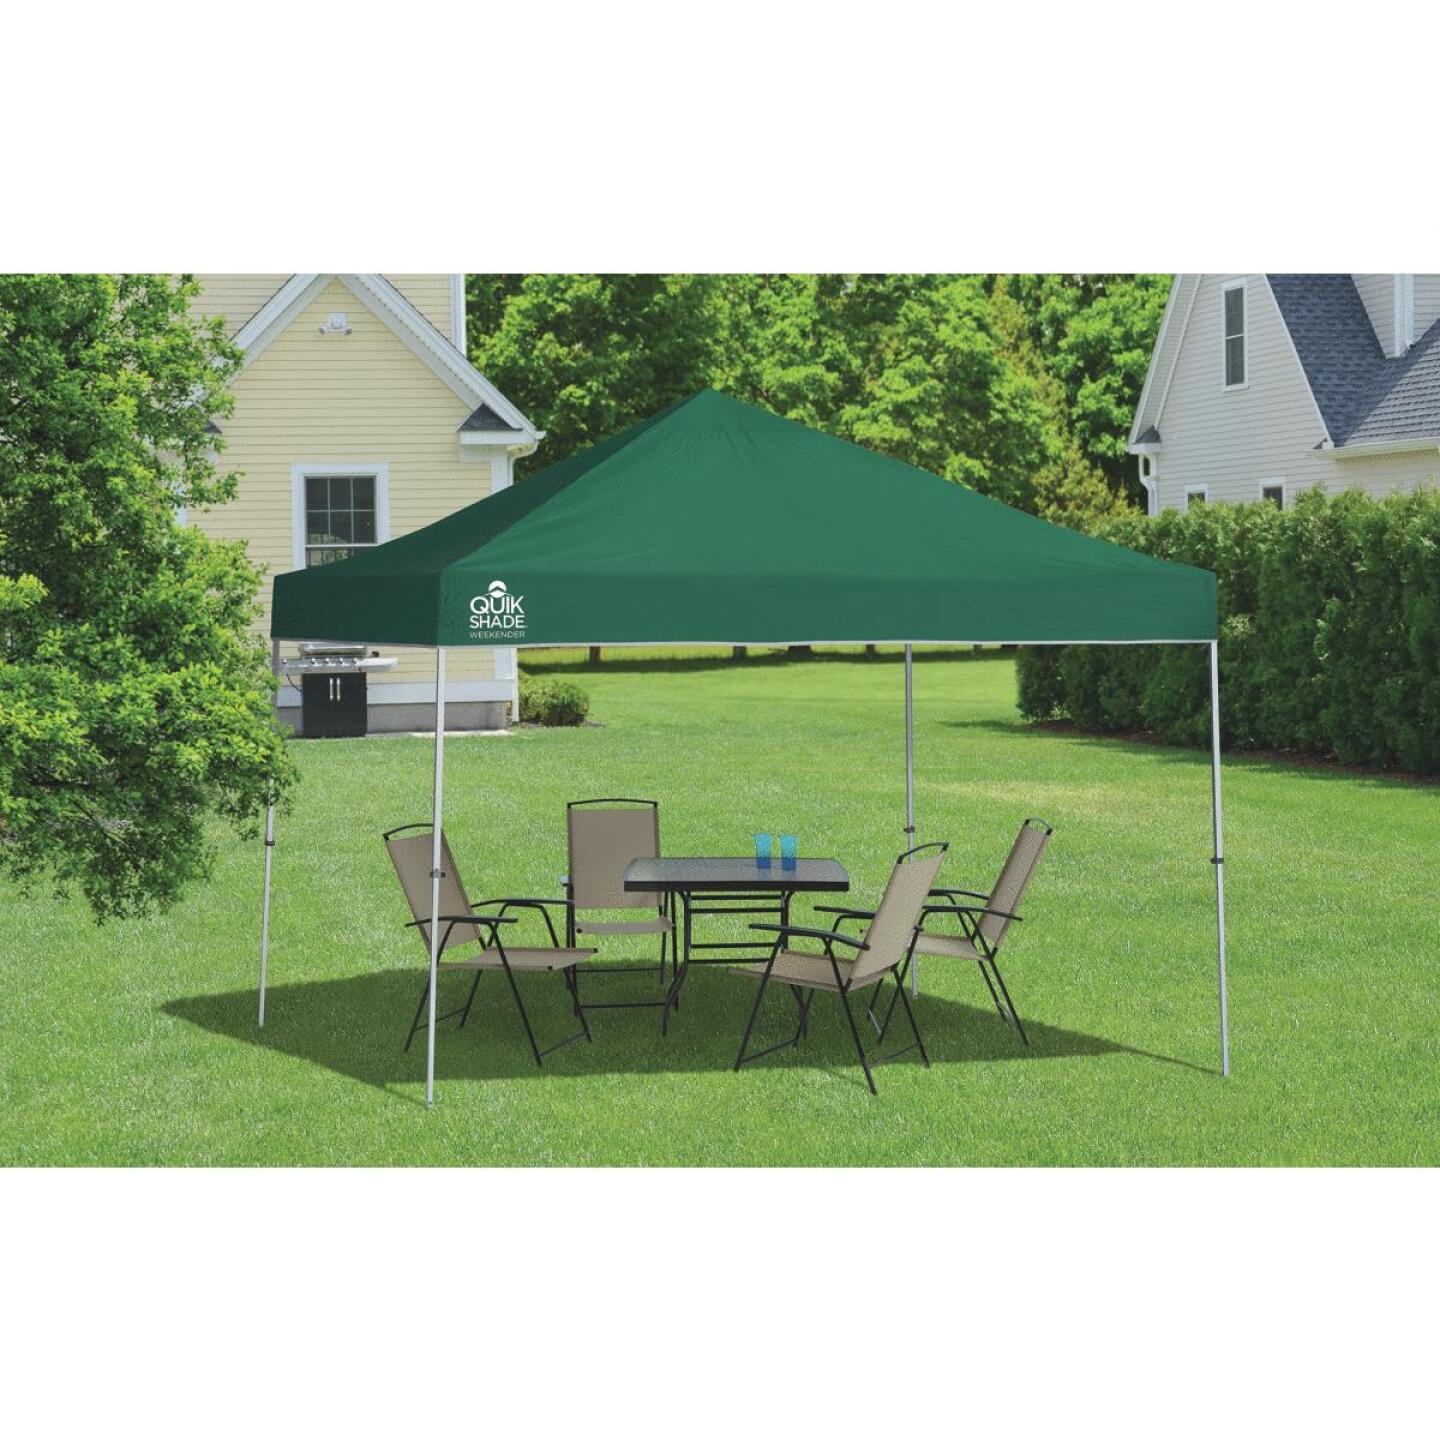 Quick Shade Weekender Elite 10 Ft. x 10 Ft. Green 150D Poly Top Aluminex Canopy Image 2